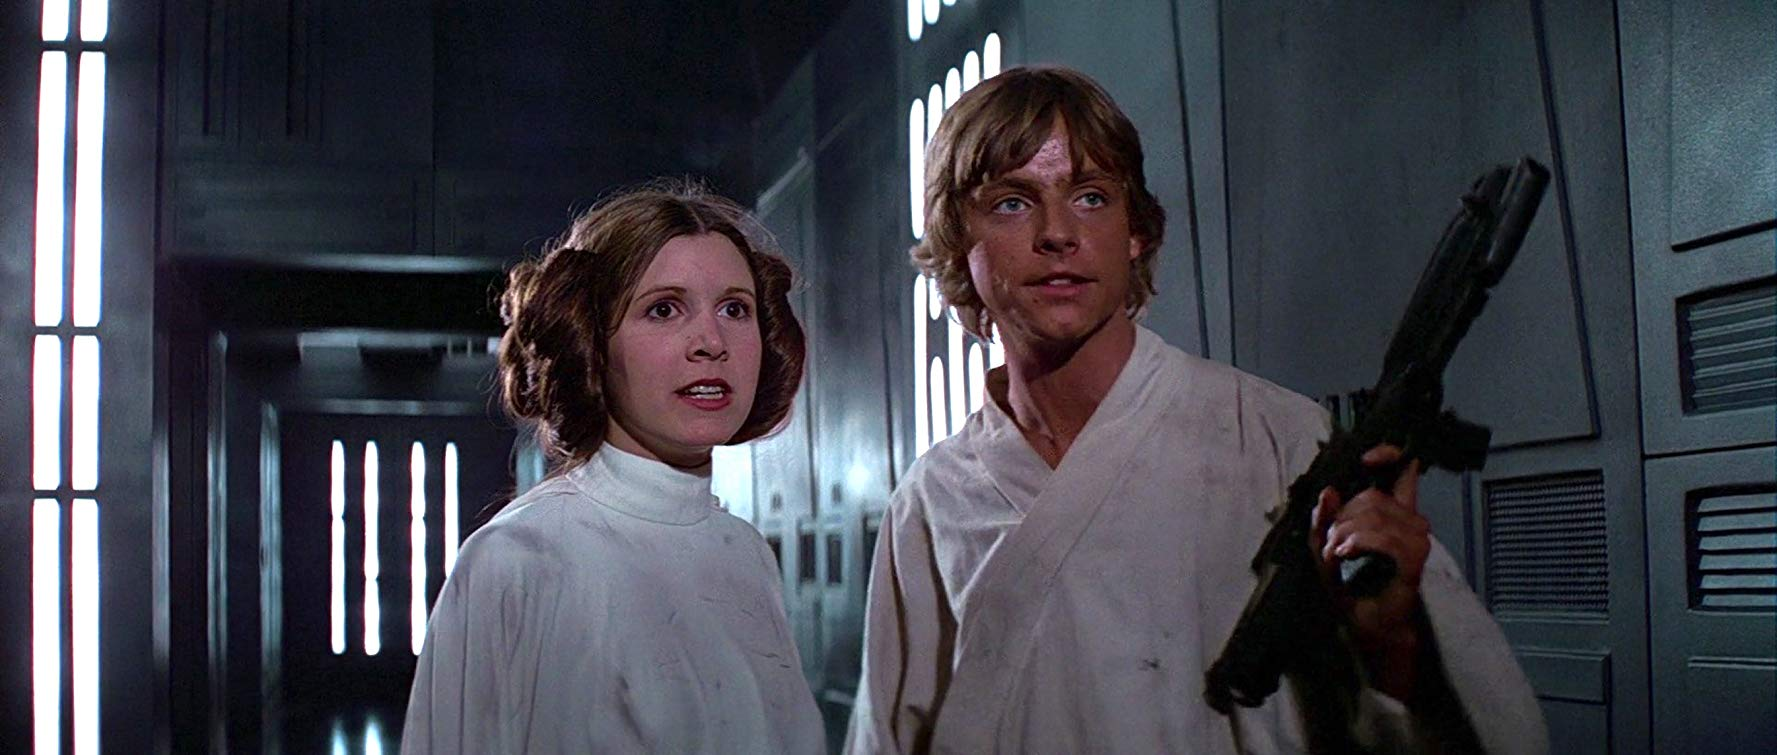 Carrie Fisher and Mark Hamill in Star Wars